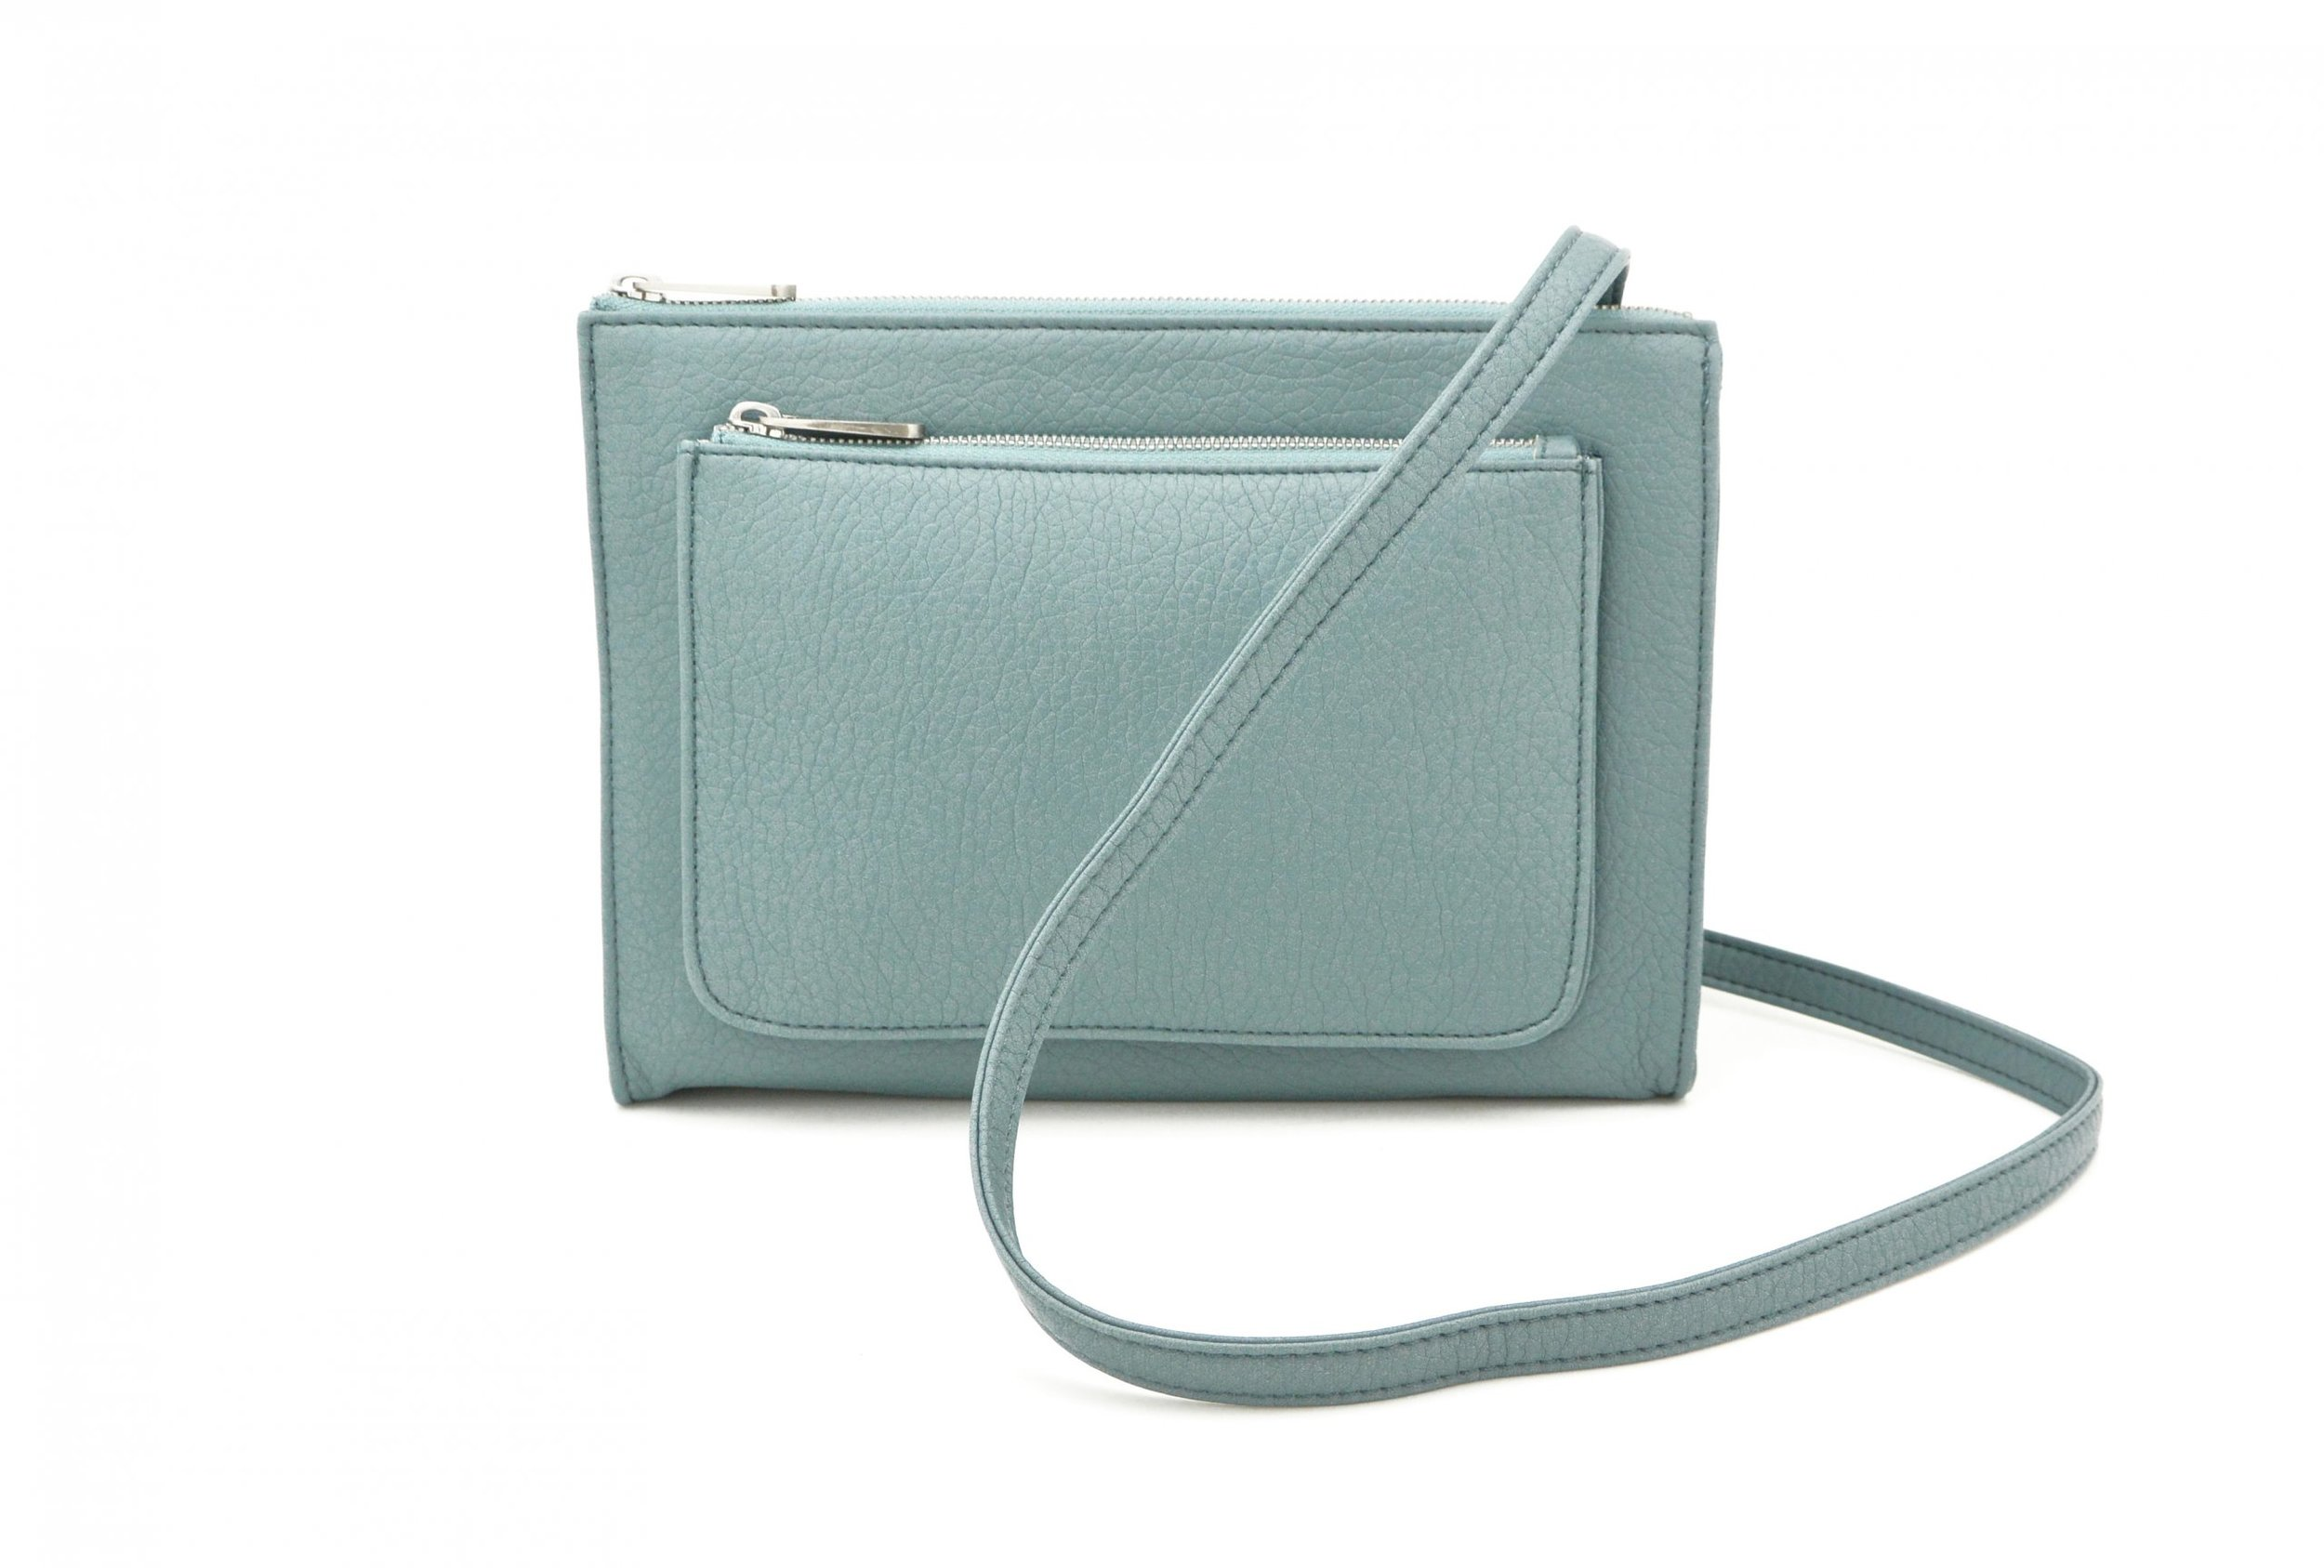 DENISE ROOBOL  CITY BAG, BLUE JEANS  €105